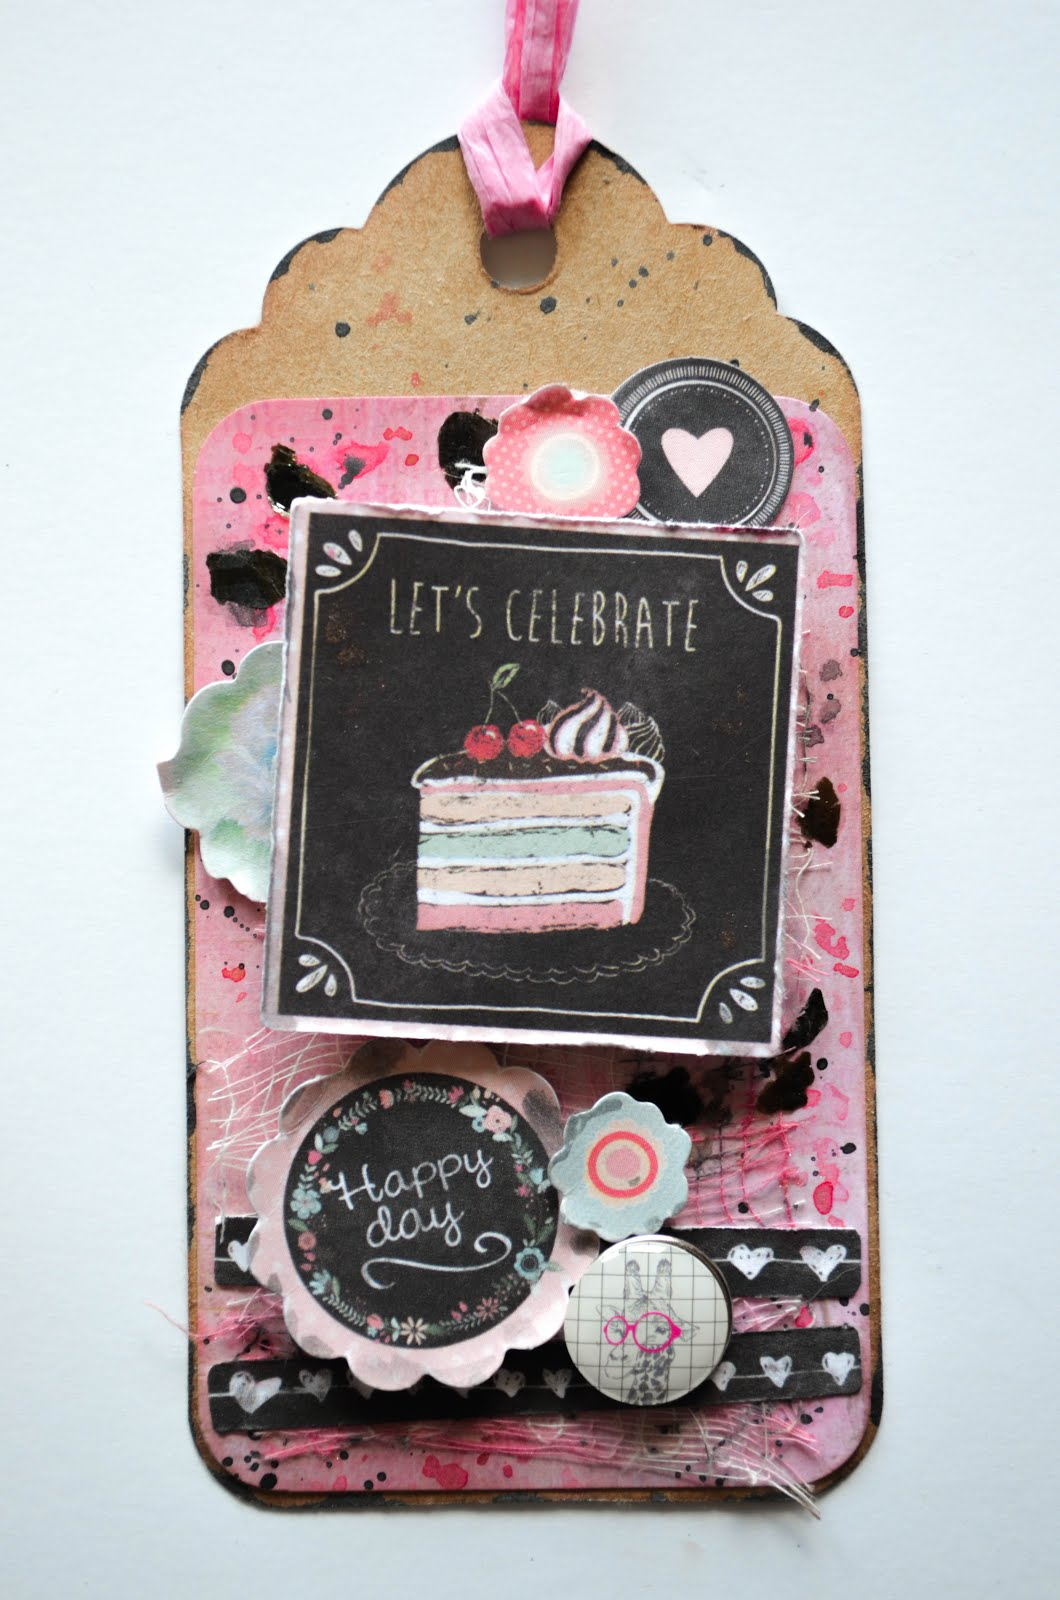 Shabby chic pink and black mixed media birthday tags with texture paste, cheesecloth, and chipboard